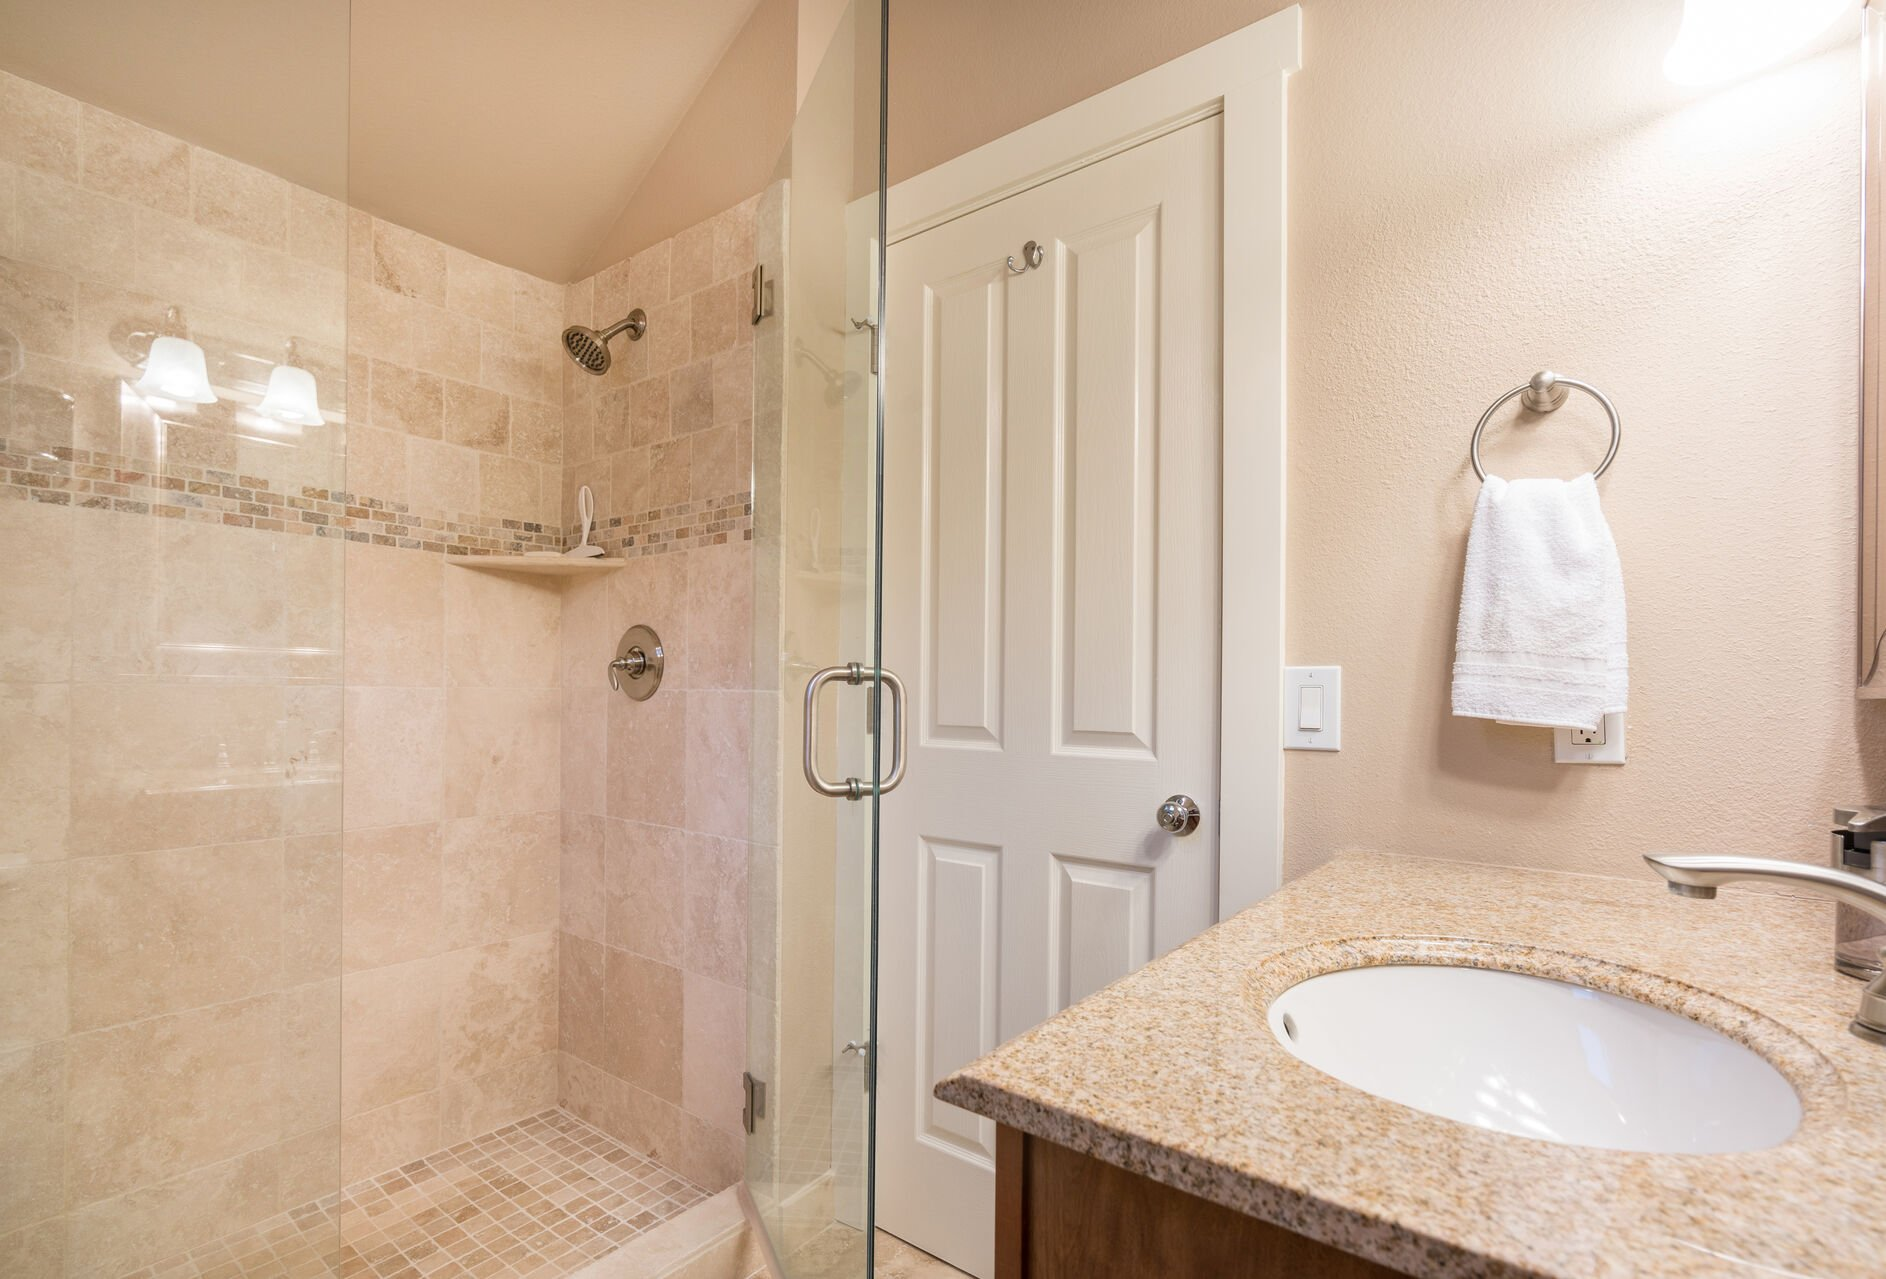 Full Bathroom with Walk-in Shower and Vanity